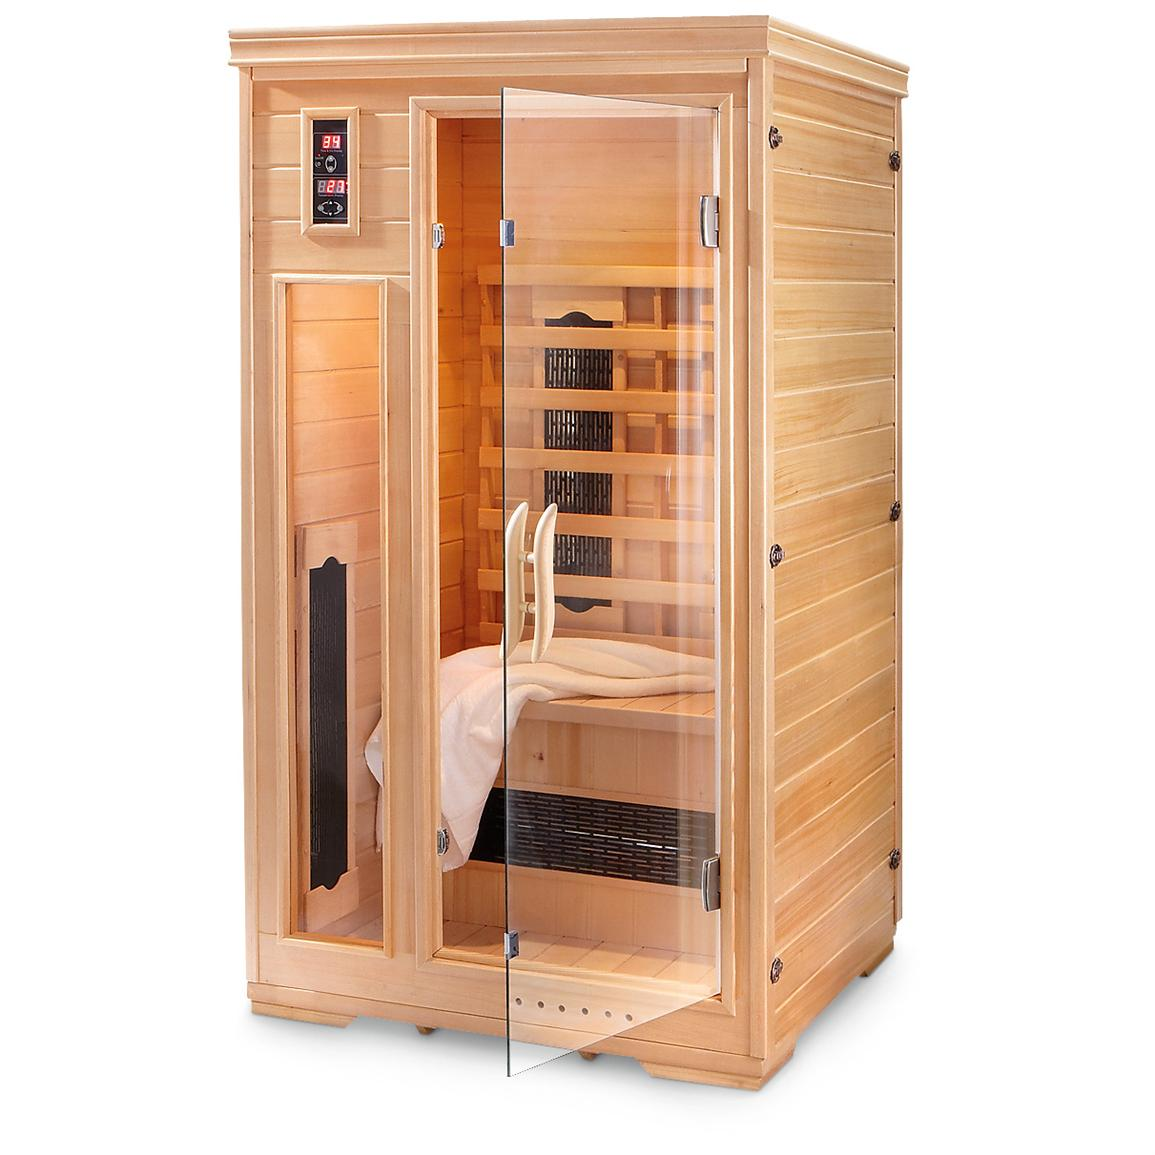 5 Best Infrared Saunas With Reviews 2017